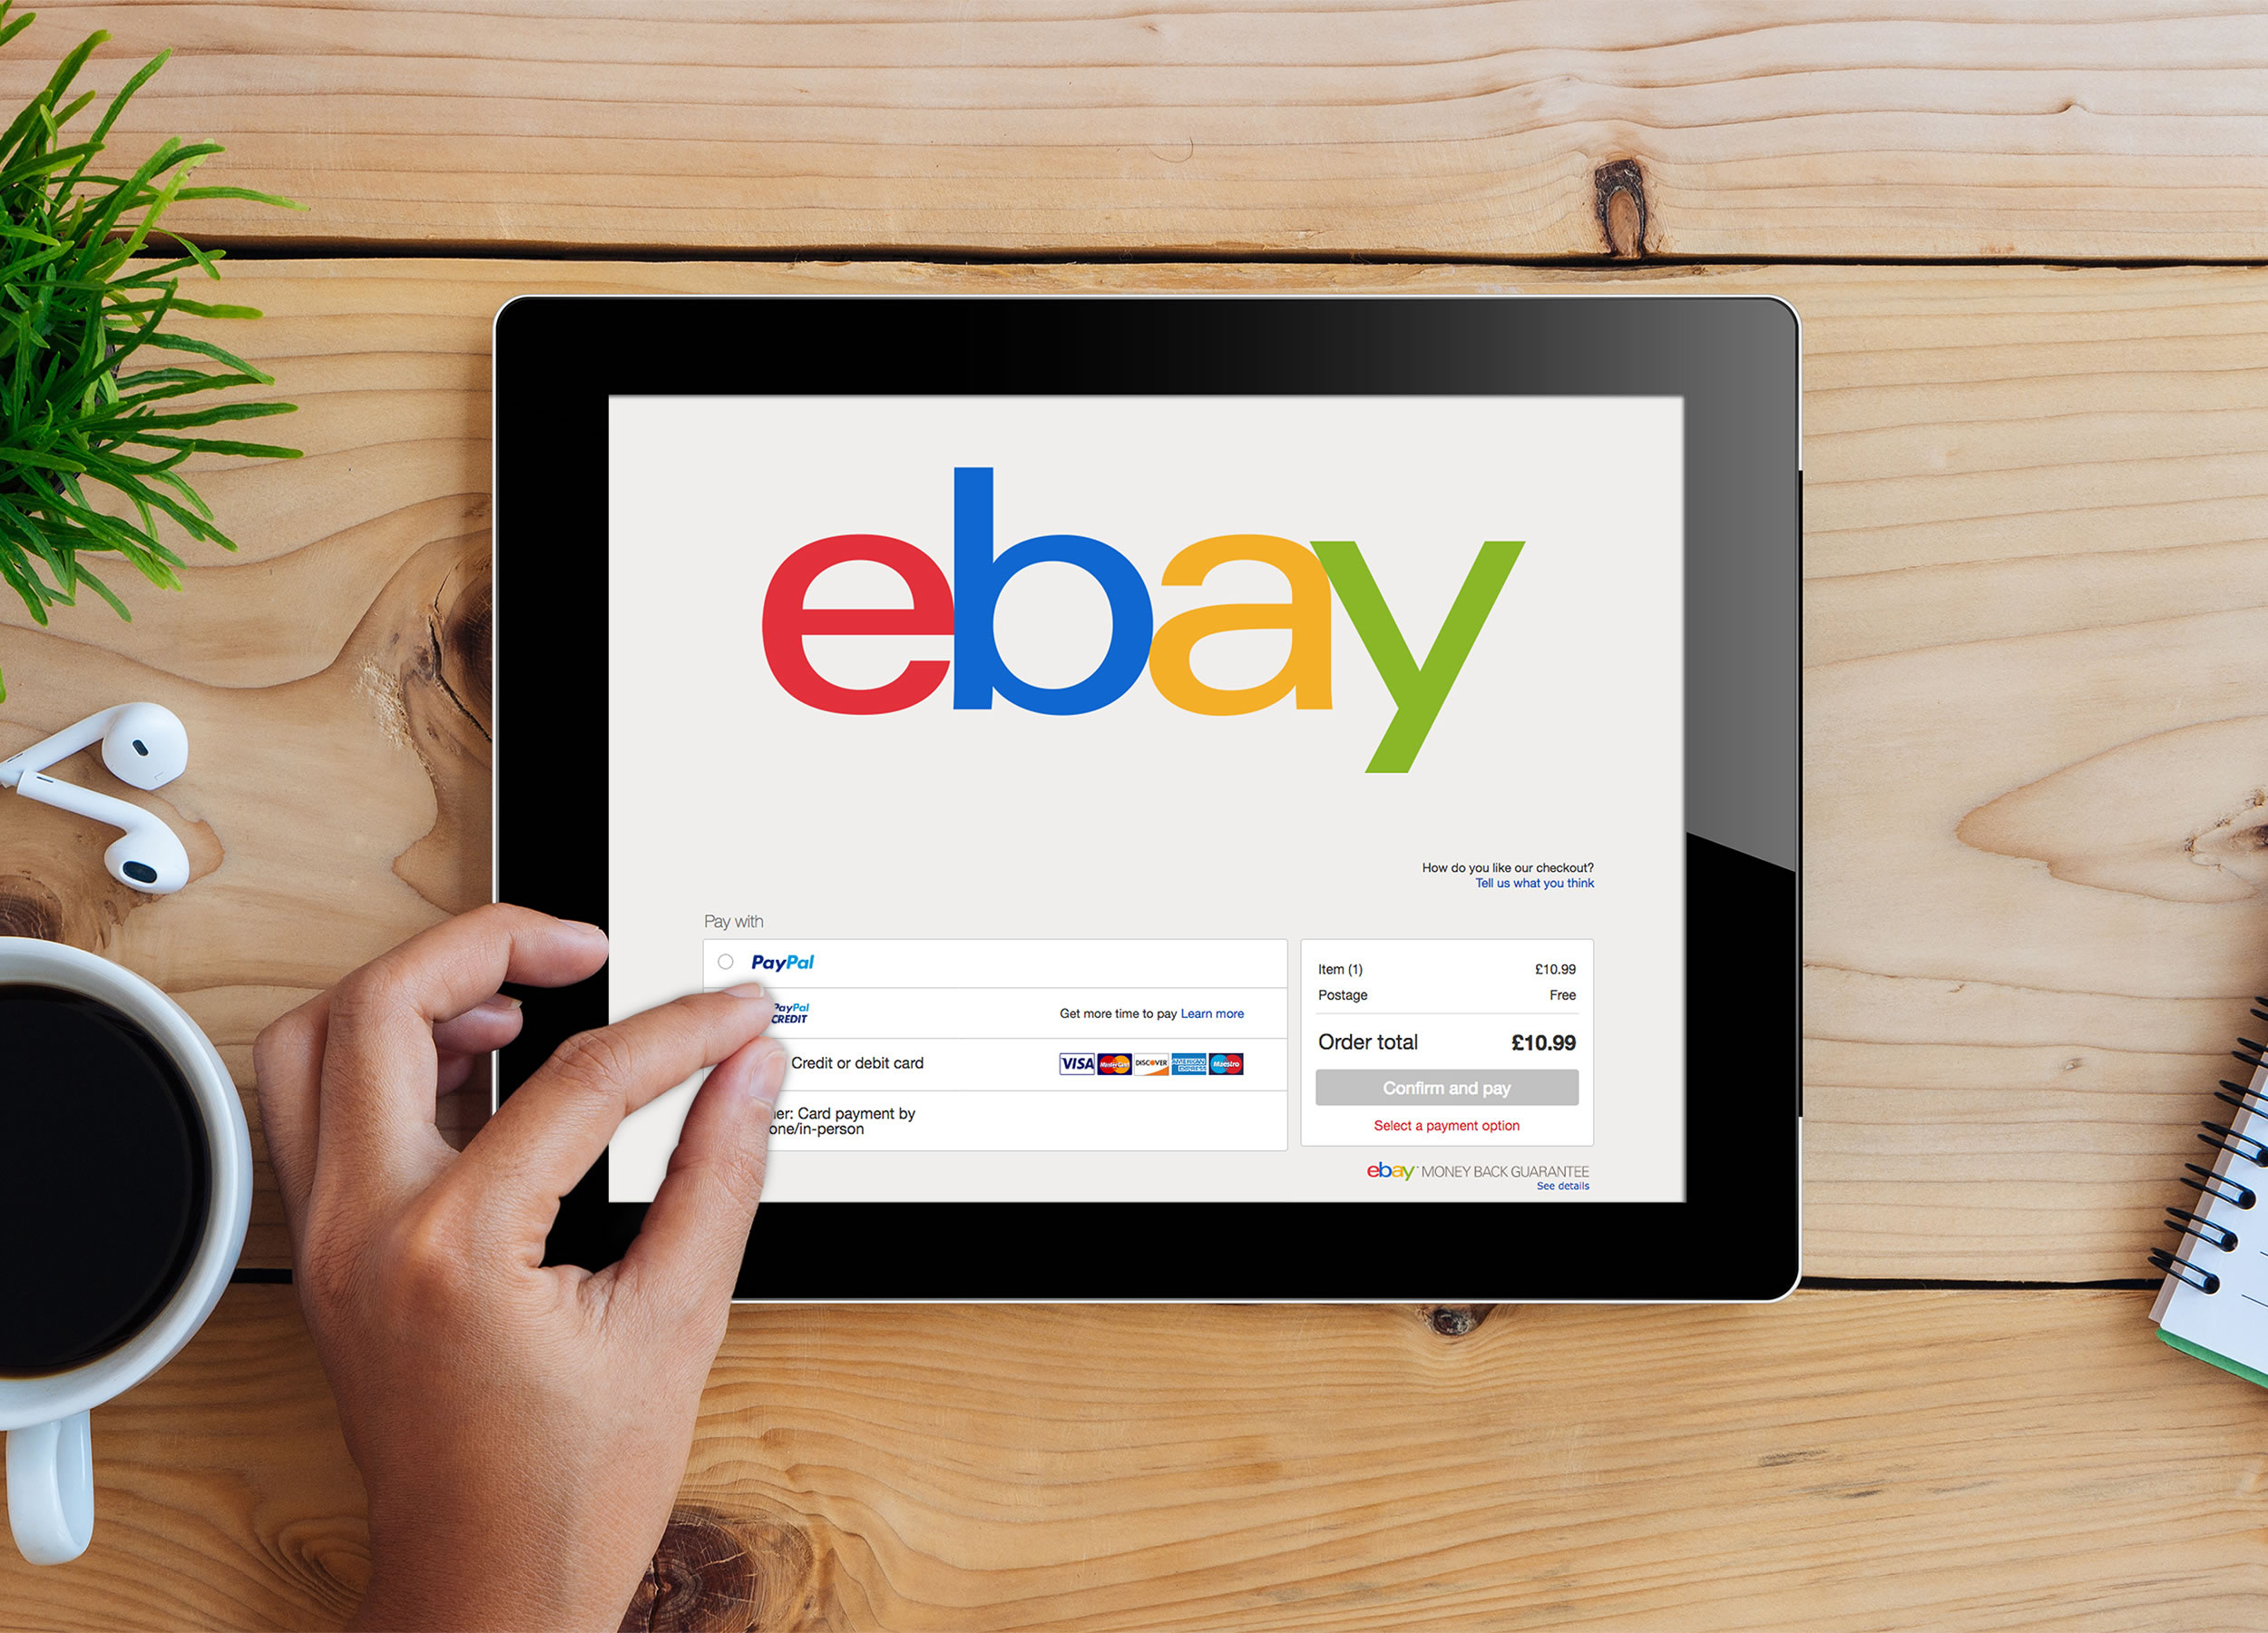 ebay to drop PayPal as primary payment provider